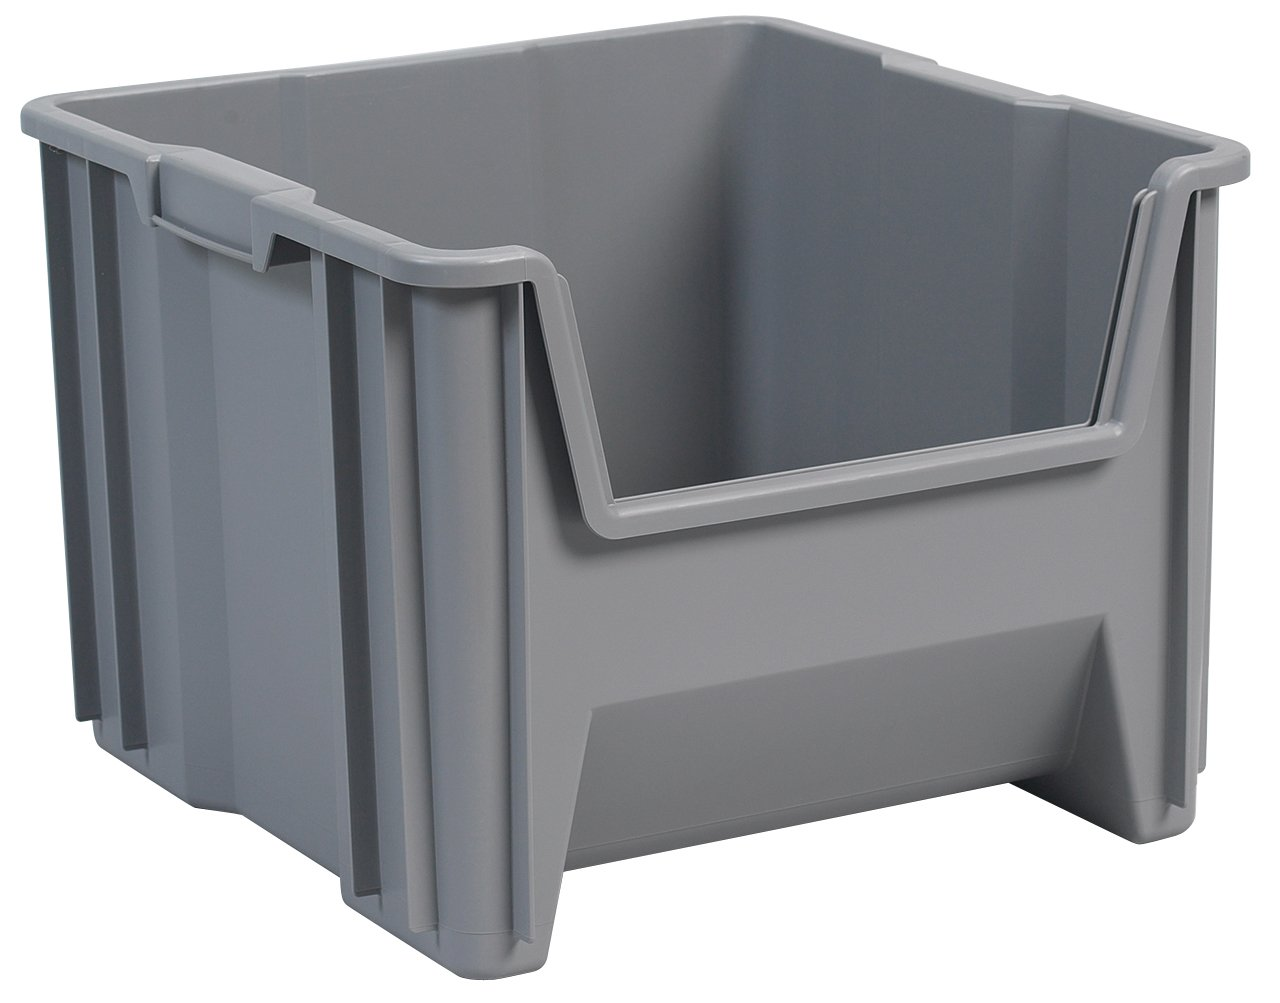 Awesome Front Opening Storage Containers Part - 12: Akro-Mils 13018 Stak-N-Store Stacking Hopper Front Plastic Storage Bin,  Grey, Case Of 2 - Open Home Storage Bins - Amazon.com